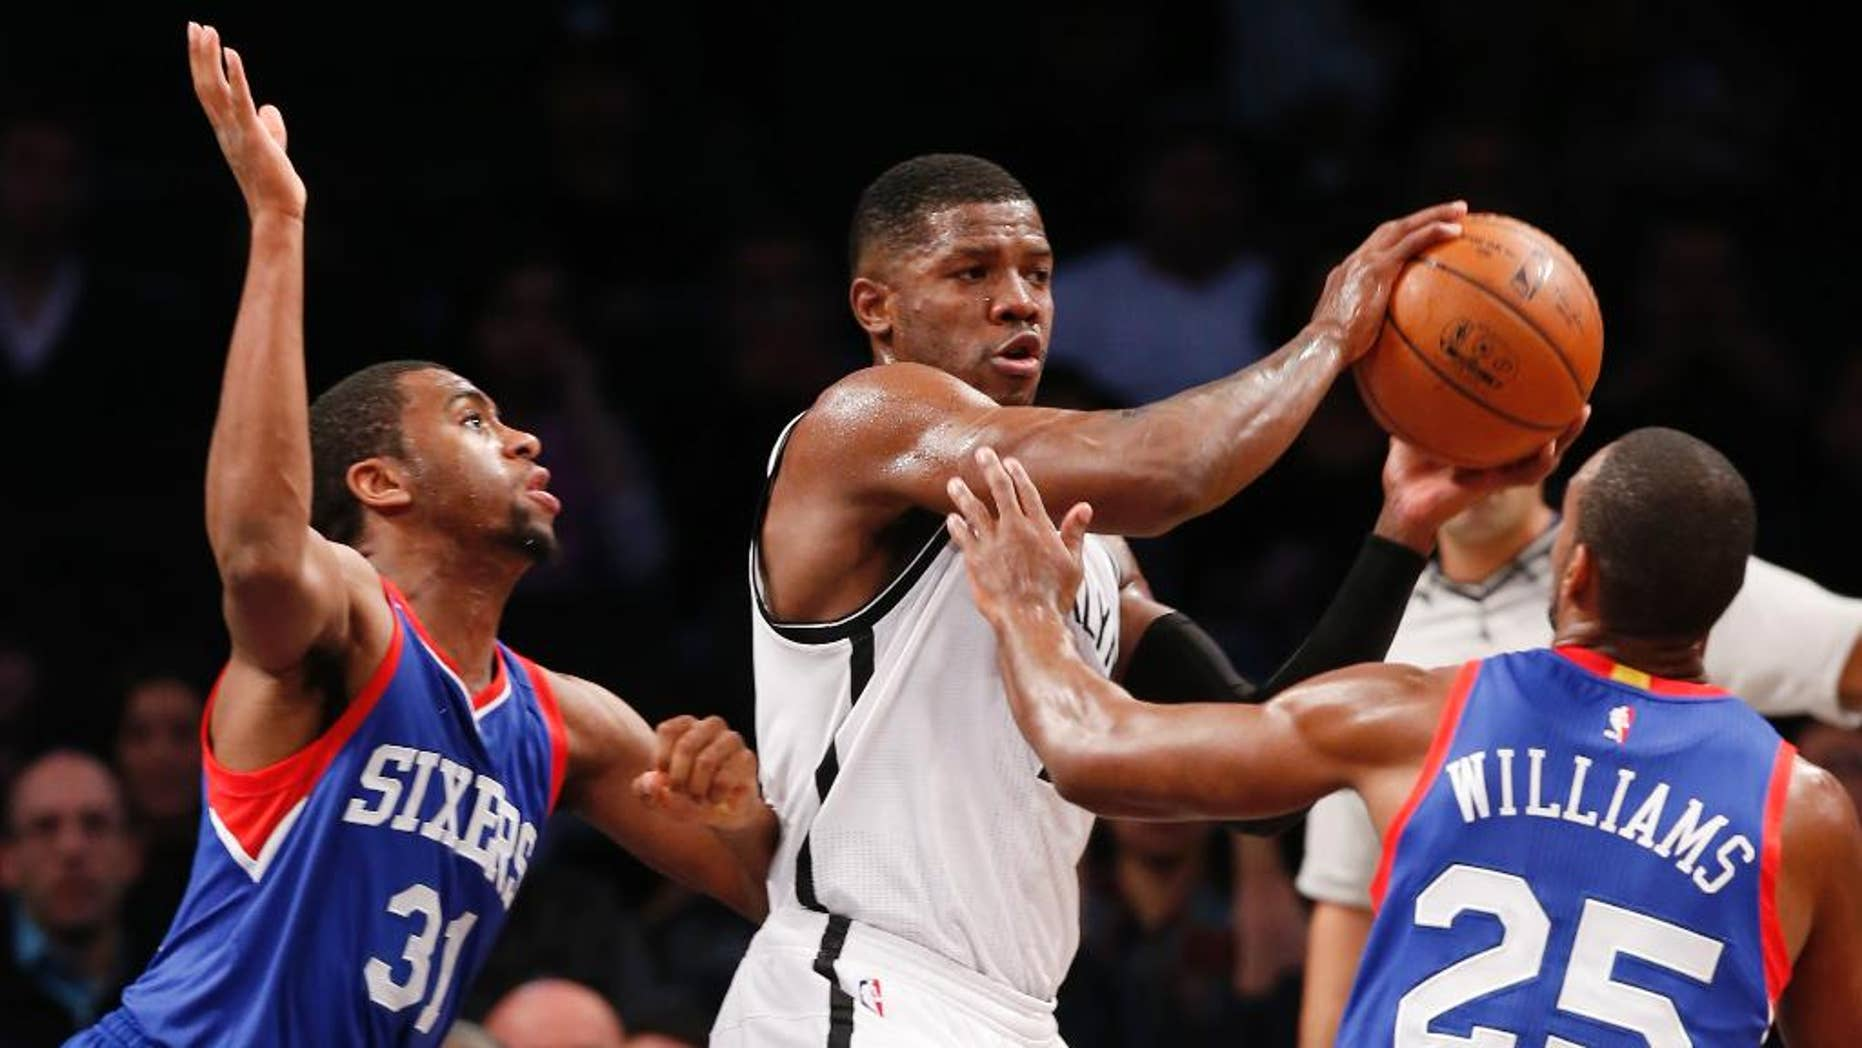 Brooklyn Nets guard Joe Johnson (7) looks to pass as Philadelphia 76ers guard Hollis Thompson (31) and 76ers guard Elliot Williams (25) defend in the first half of an NBA basketball game at the Barclays Center, Monday, Oct. 20, 2014, in New York. (AP Photo/Kathy Willens)